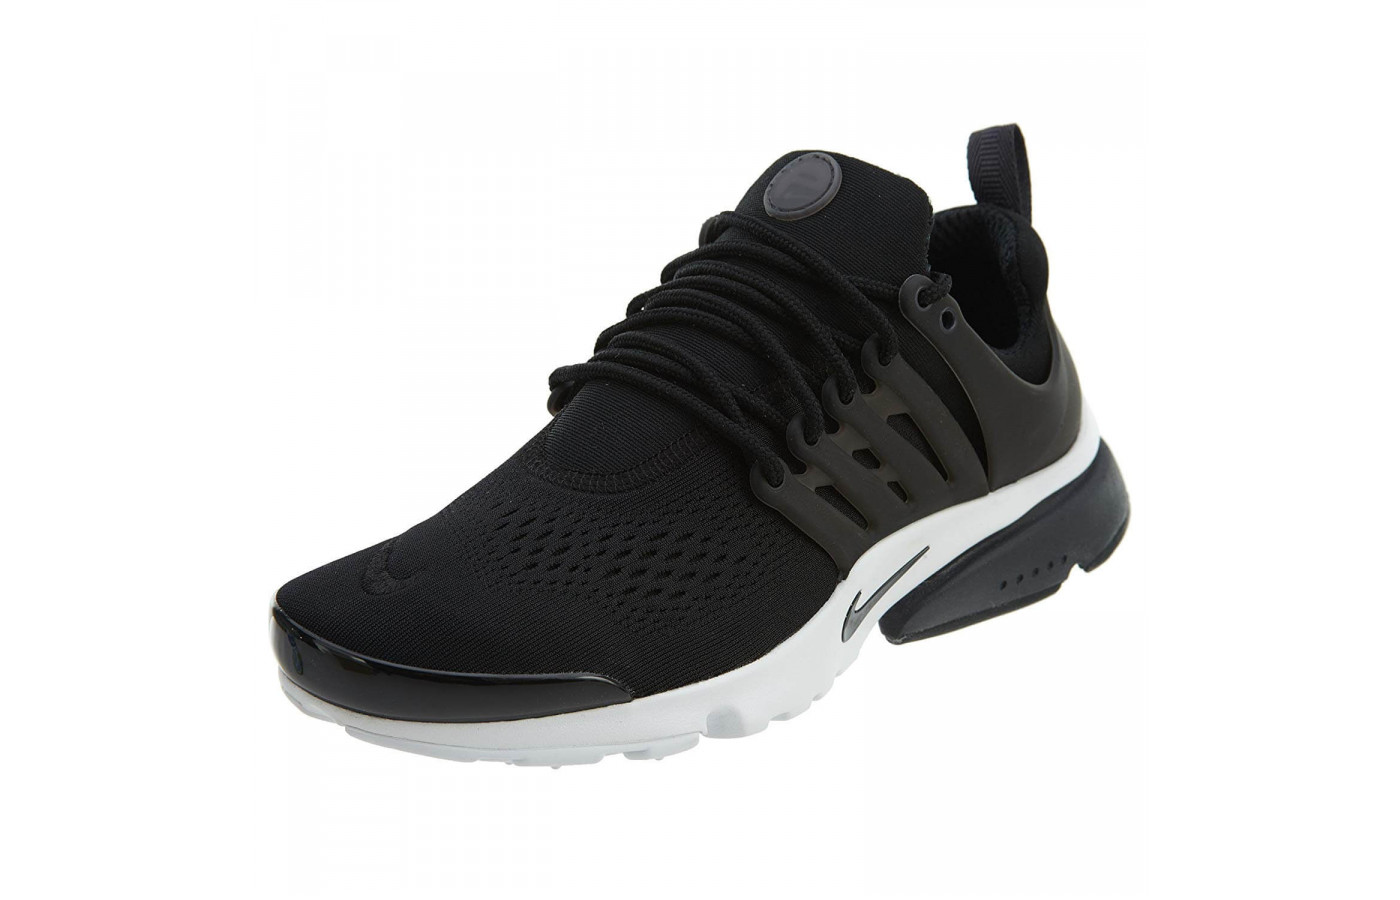 Nike Air Presto Ultra Breathe Angled